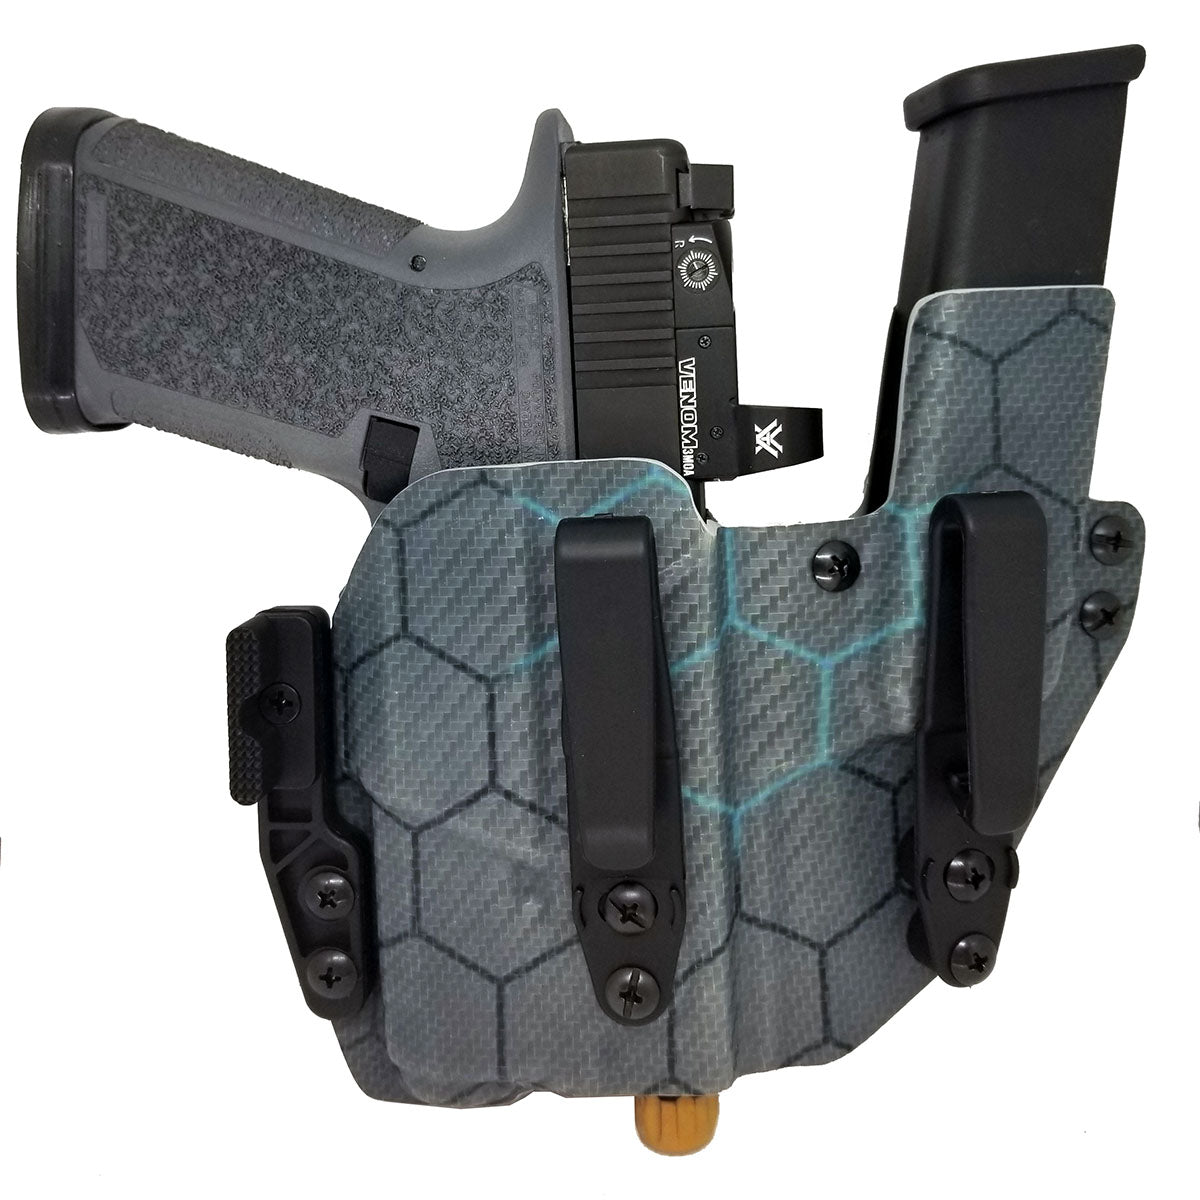 Polymer80 PF940C with Inforce APLc AIWB & Mag Holster